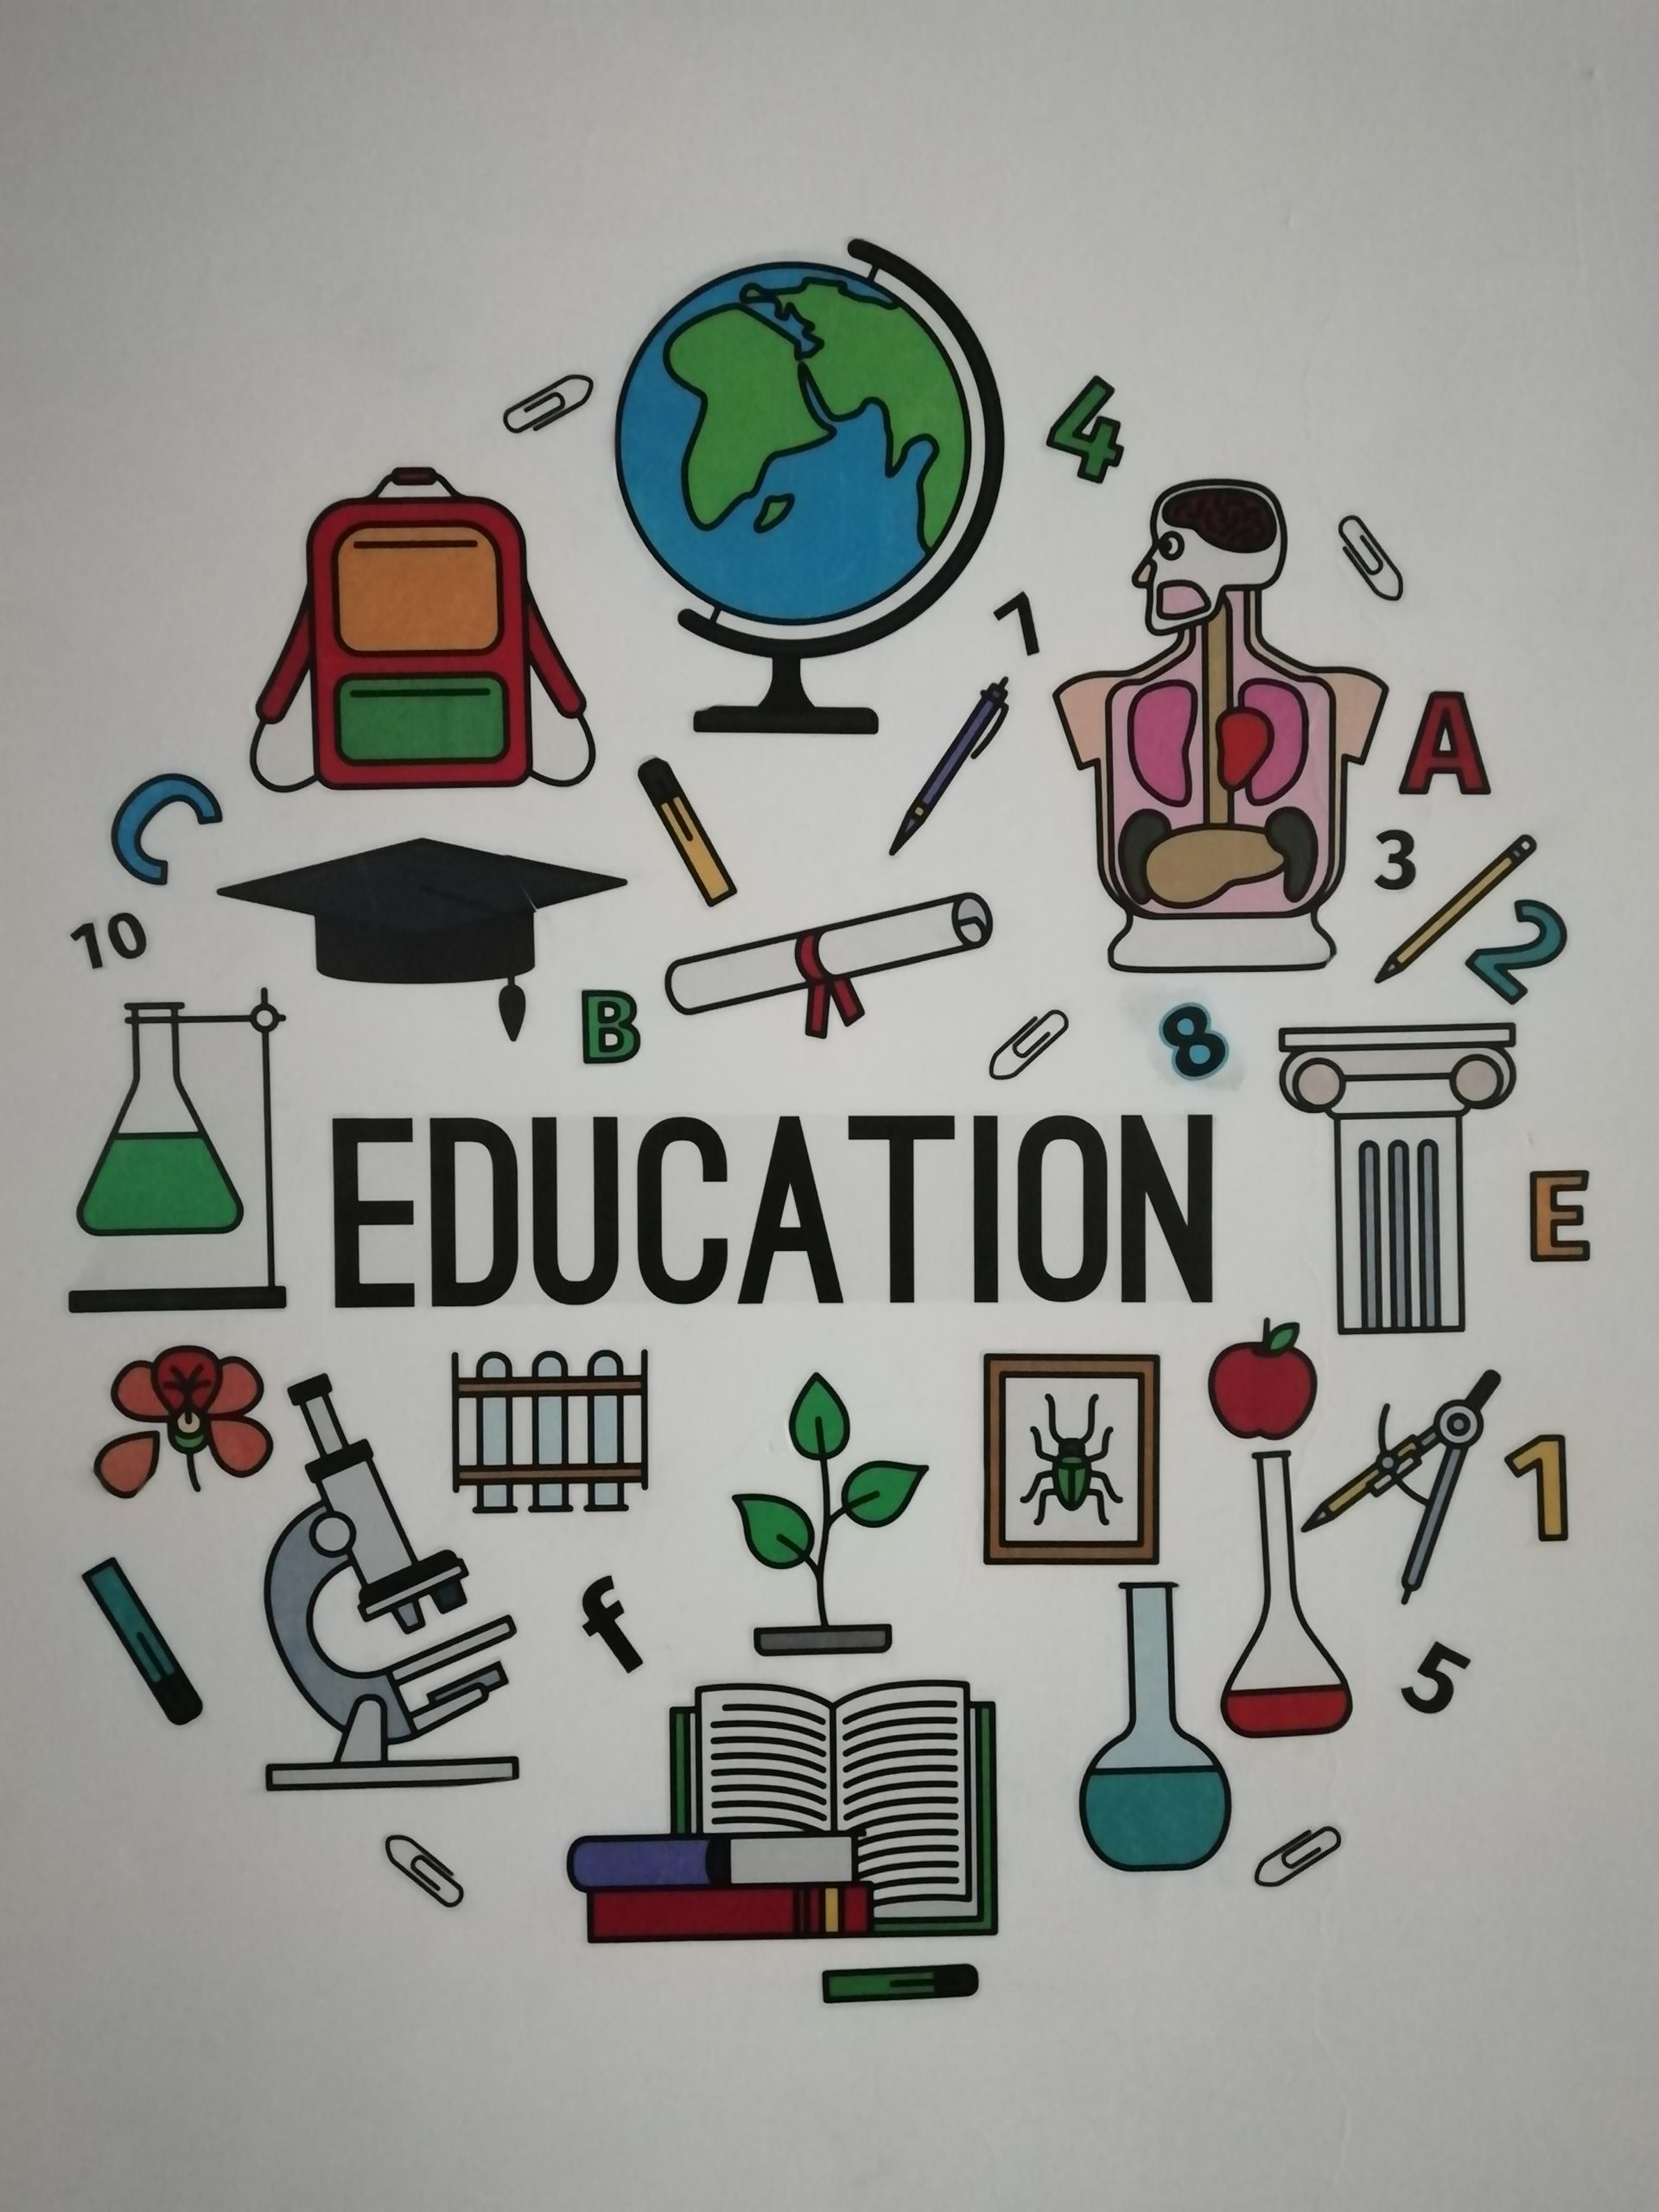 Education divided into four parts